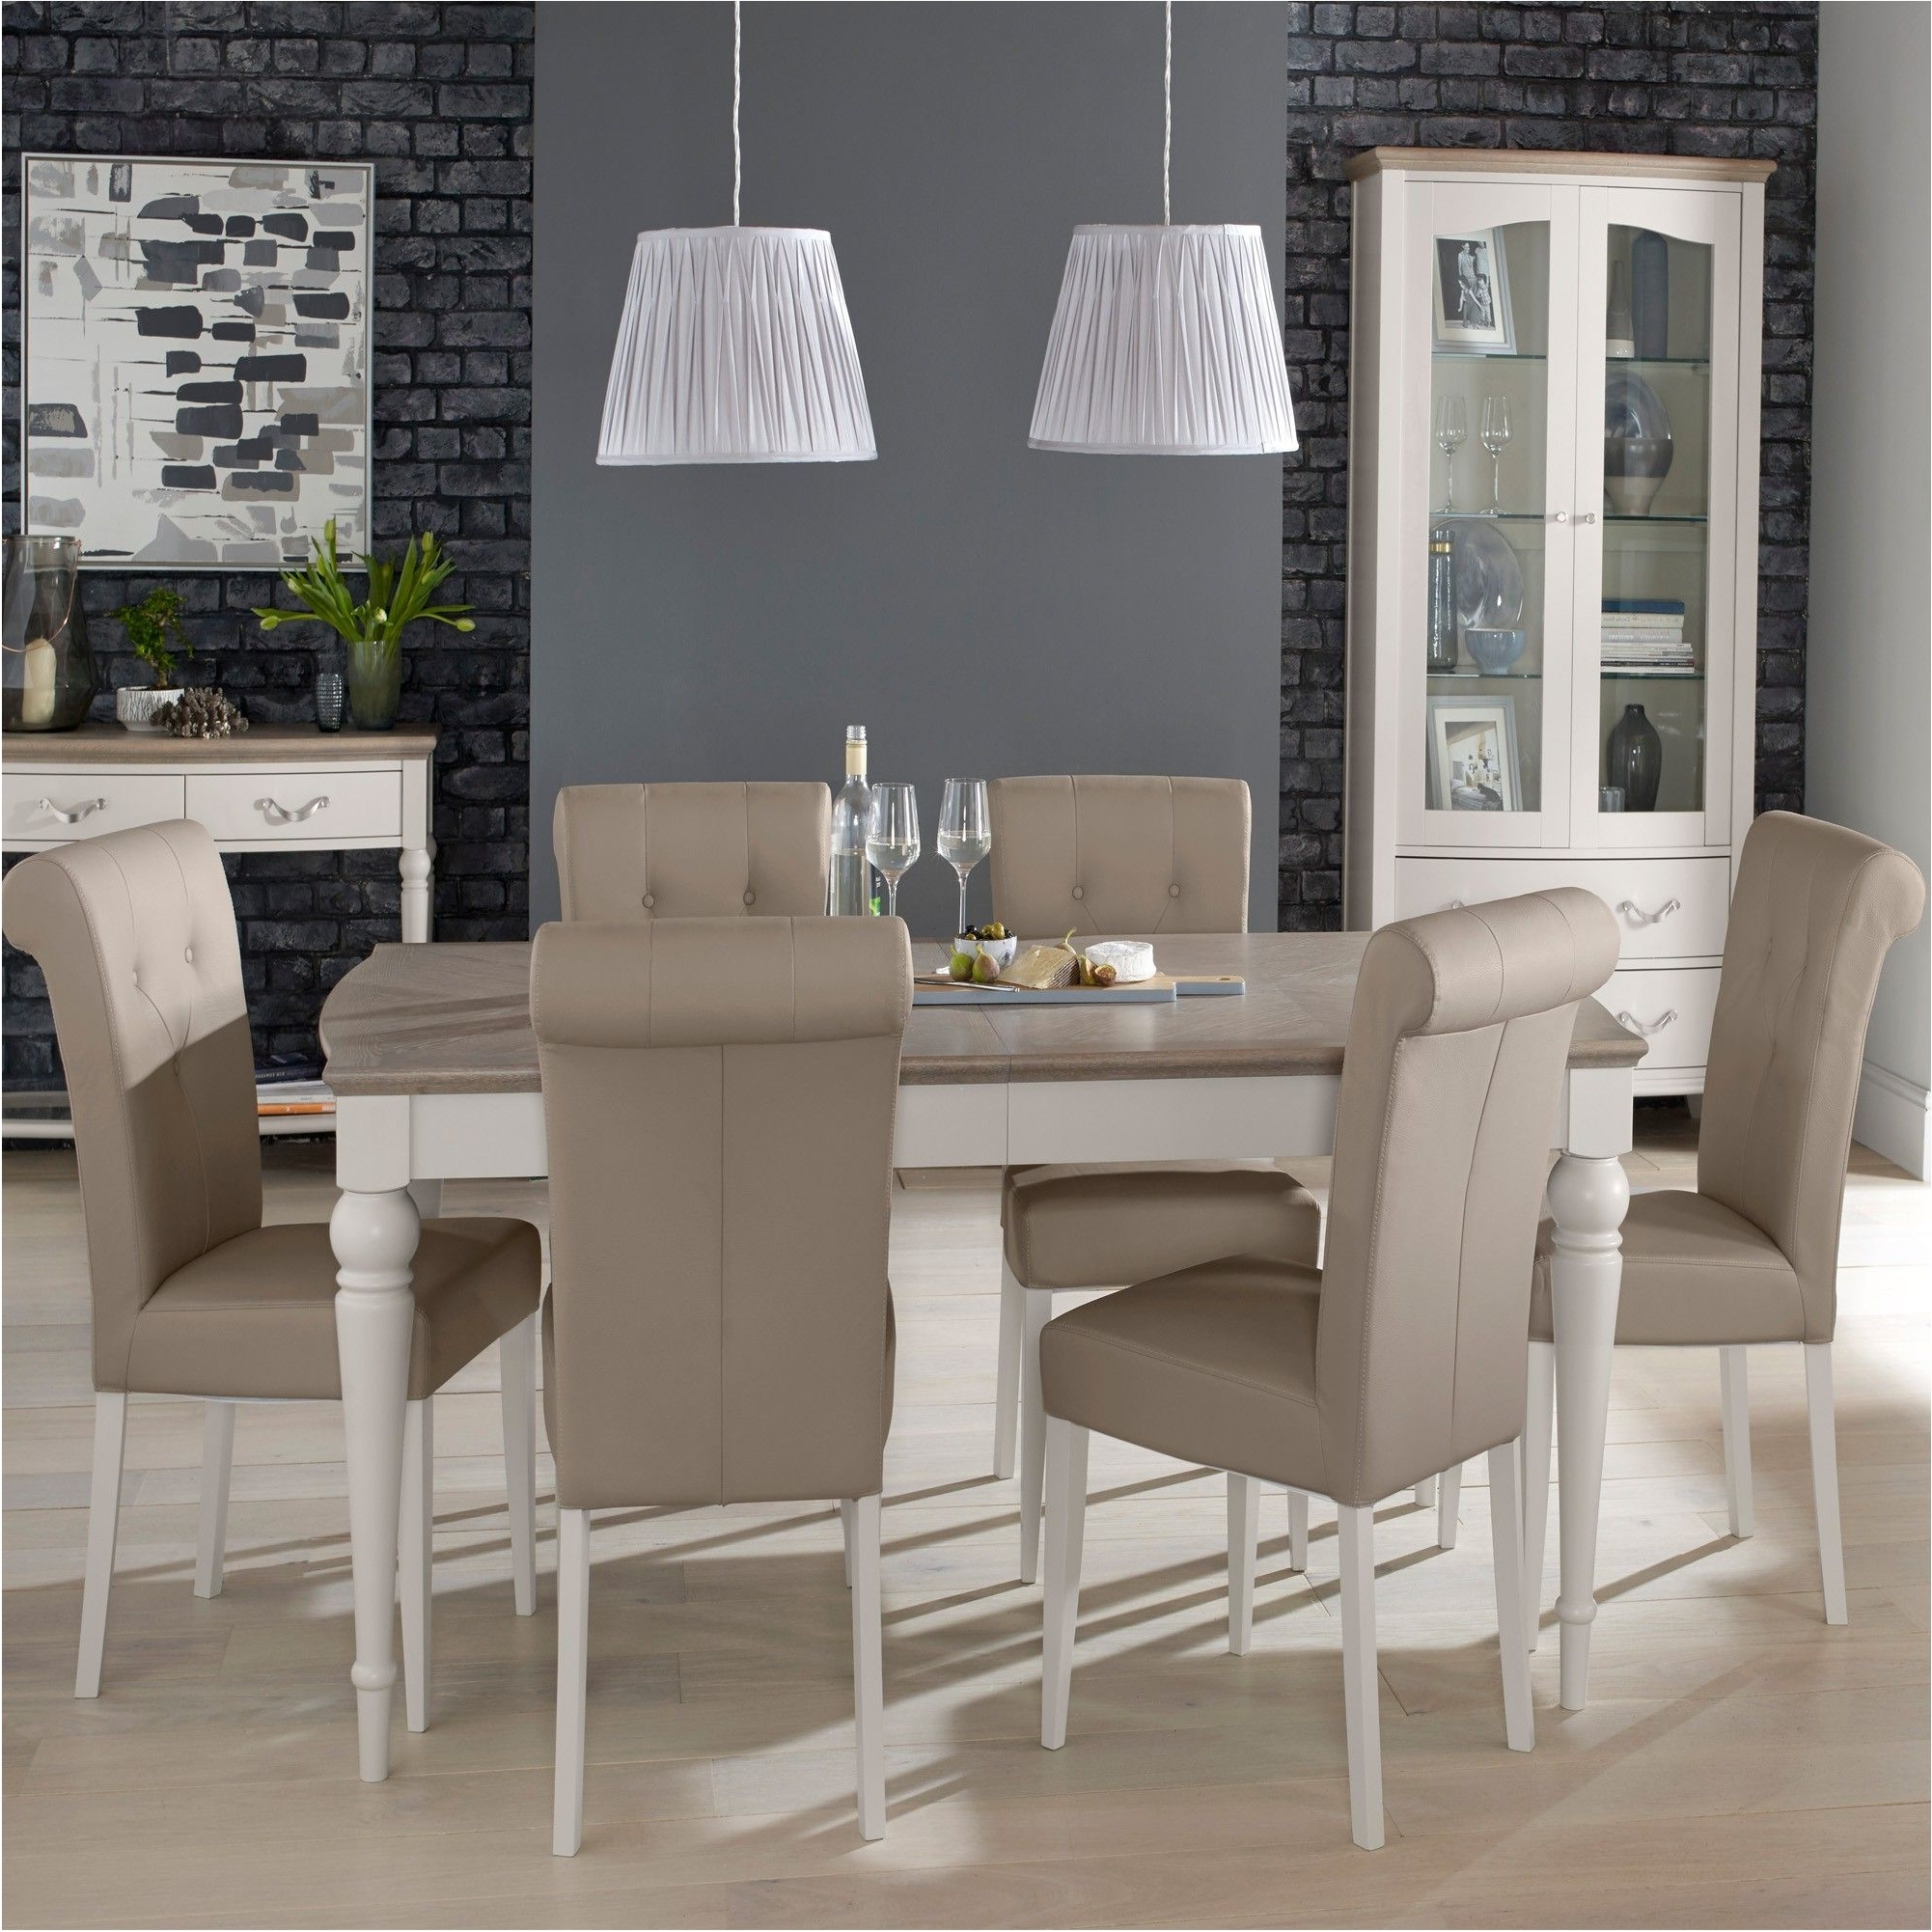 Breathtaking Collection Geneva Dining Table And 6 Chairs Dining Sets Within Most Popular 6 Seat Dining Tables (Gallery 10 of 25)